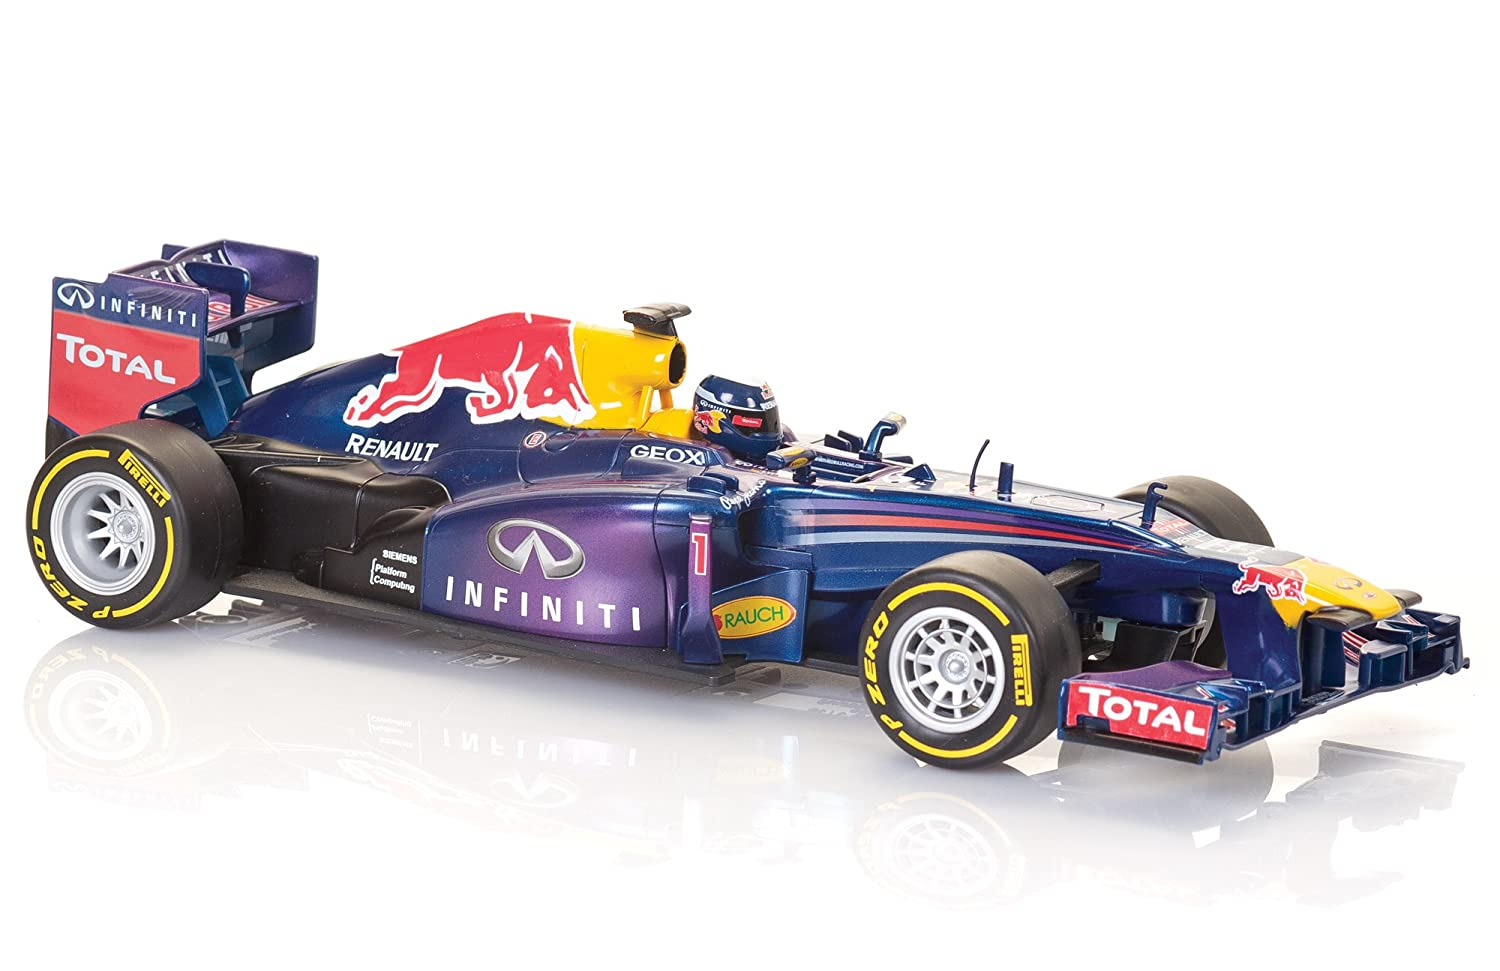 Tobar 1 64 Scale Red Bull RB9 Car  Amazon.co.uk  Toys   Games 65b2dae4981e2